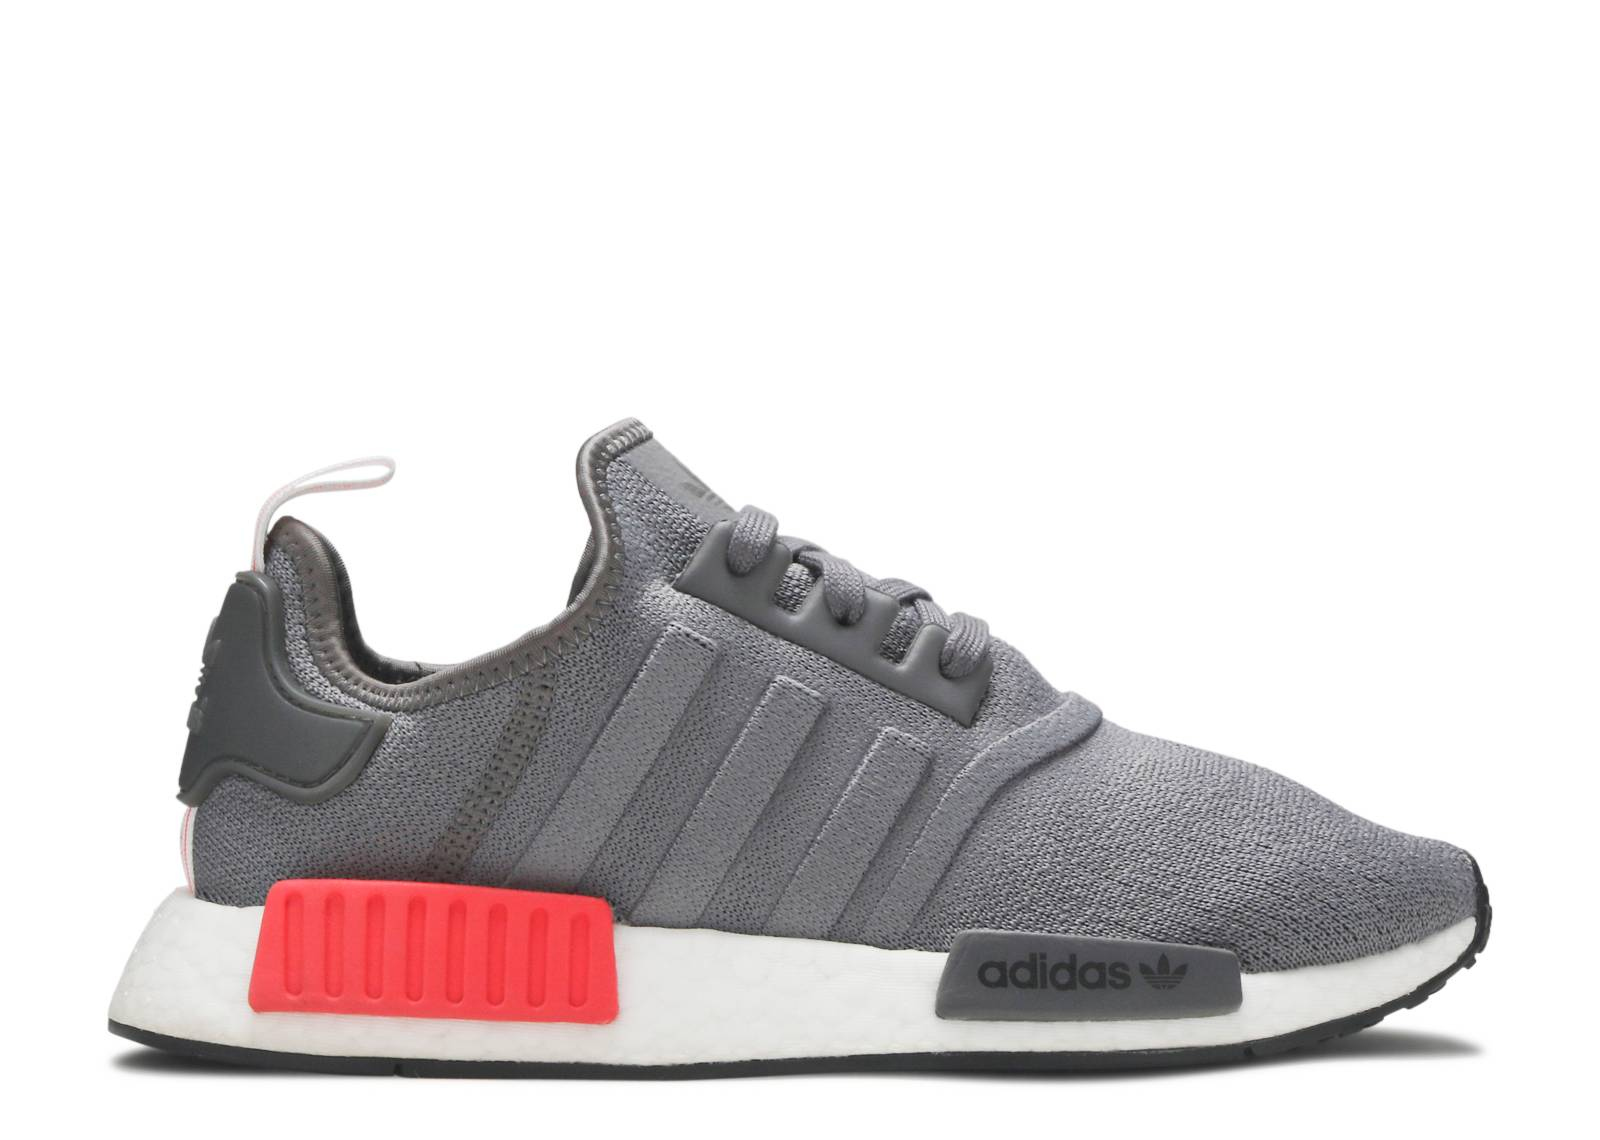 low priced 7a44b 728f6 Adidas NMD - adidas Originals Men's & Women's Shoes | Flight ...